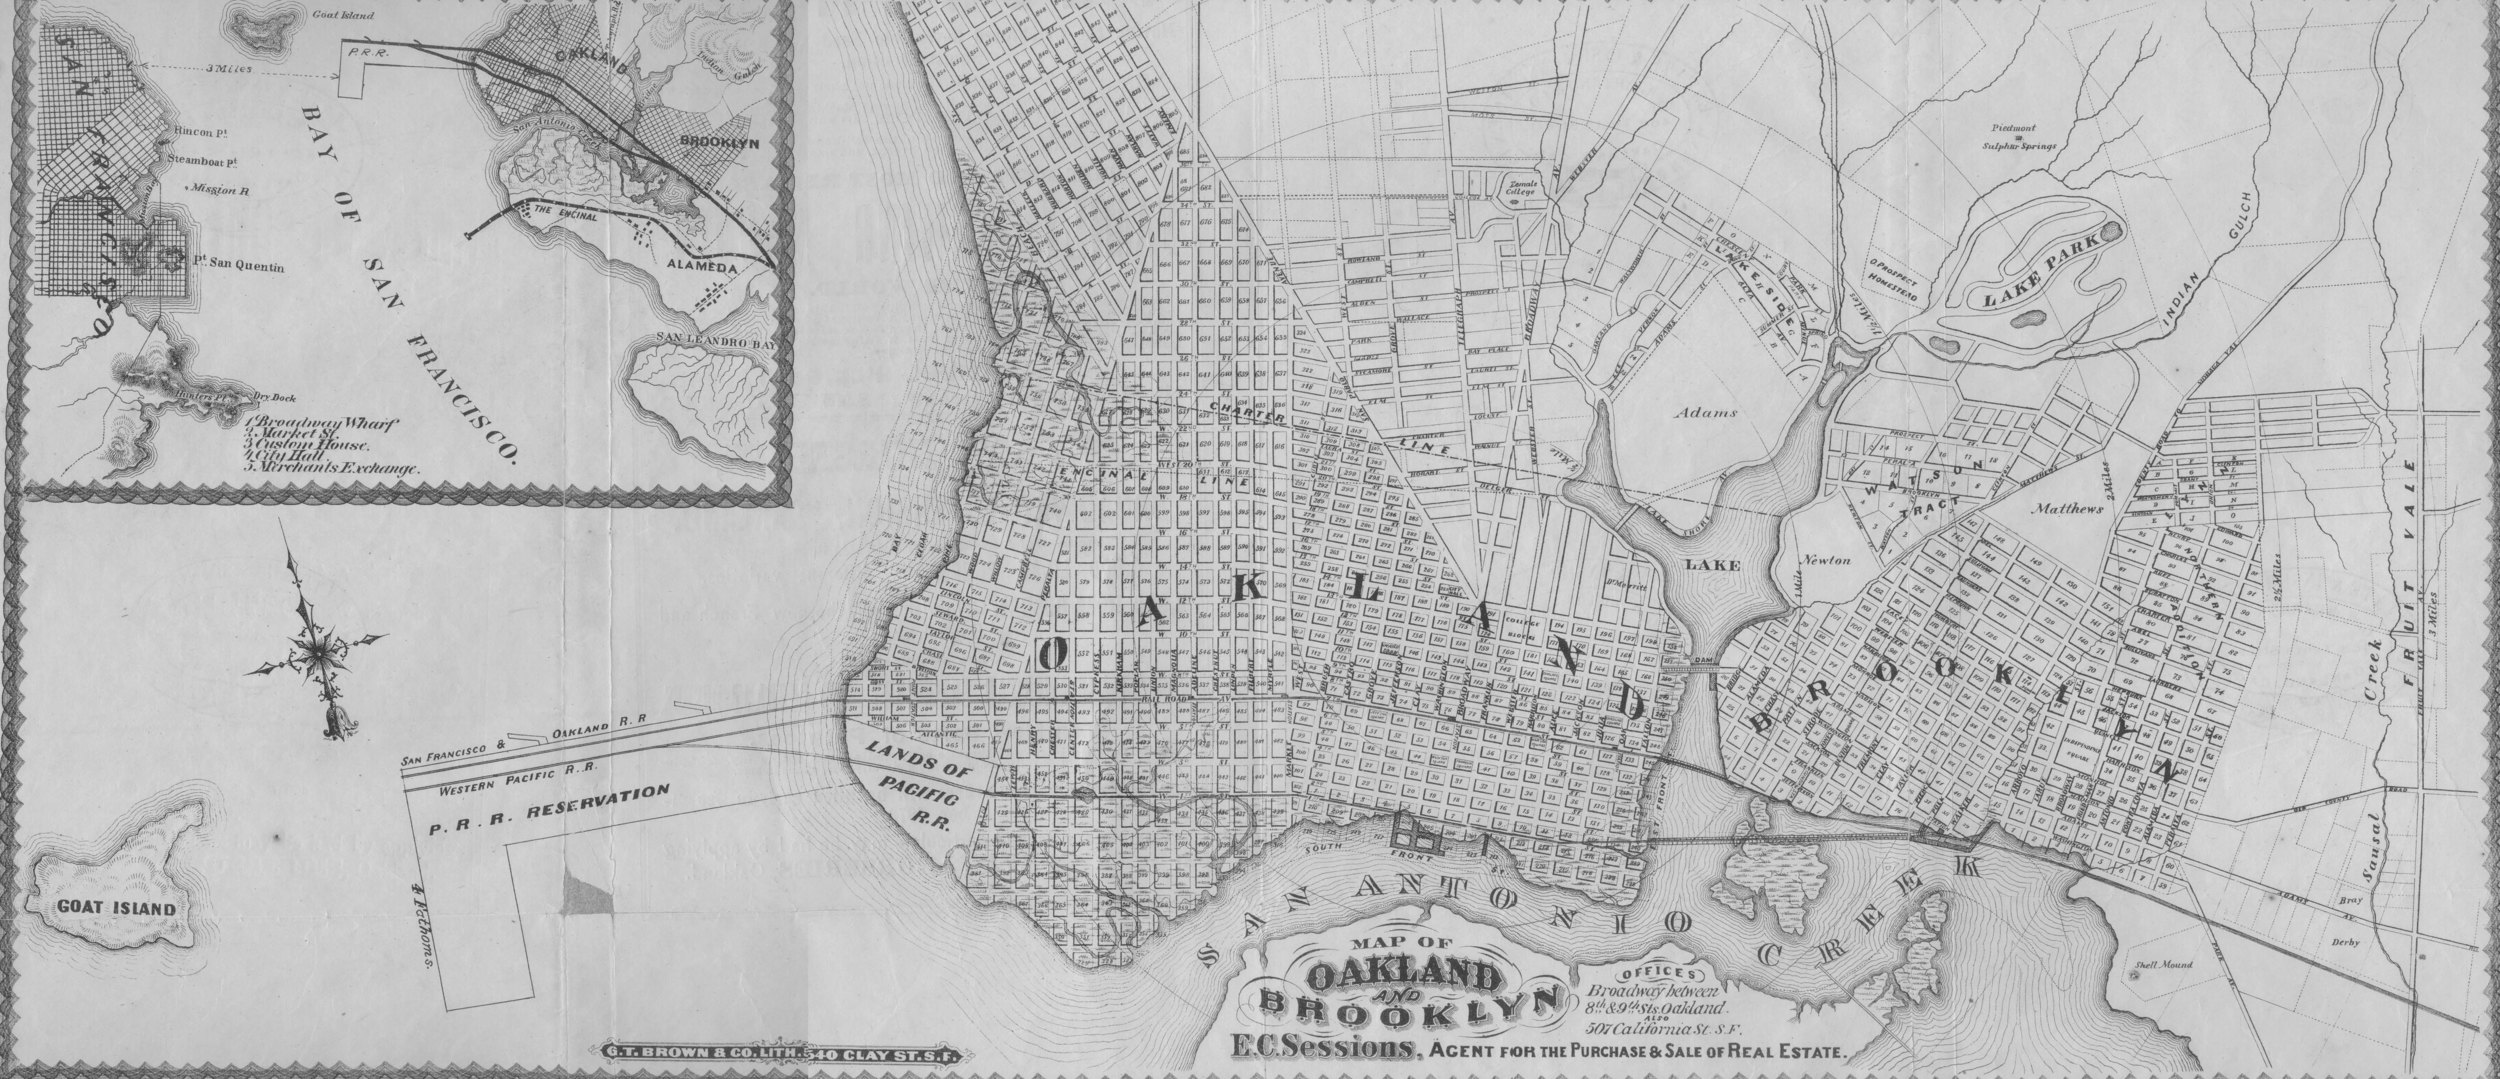 Map of Oakland and Brooklyn, E.C. Sessions, Agent for the Purchase and Sale of Real Estate, c. 1869. Collectionof the Bancroft Library at the University of California, Berkeley. Source:  Oakland Wiki  via Calisphere .